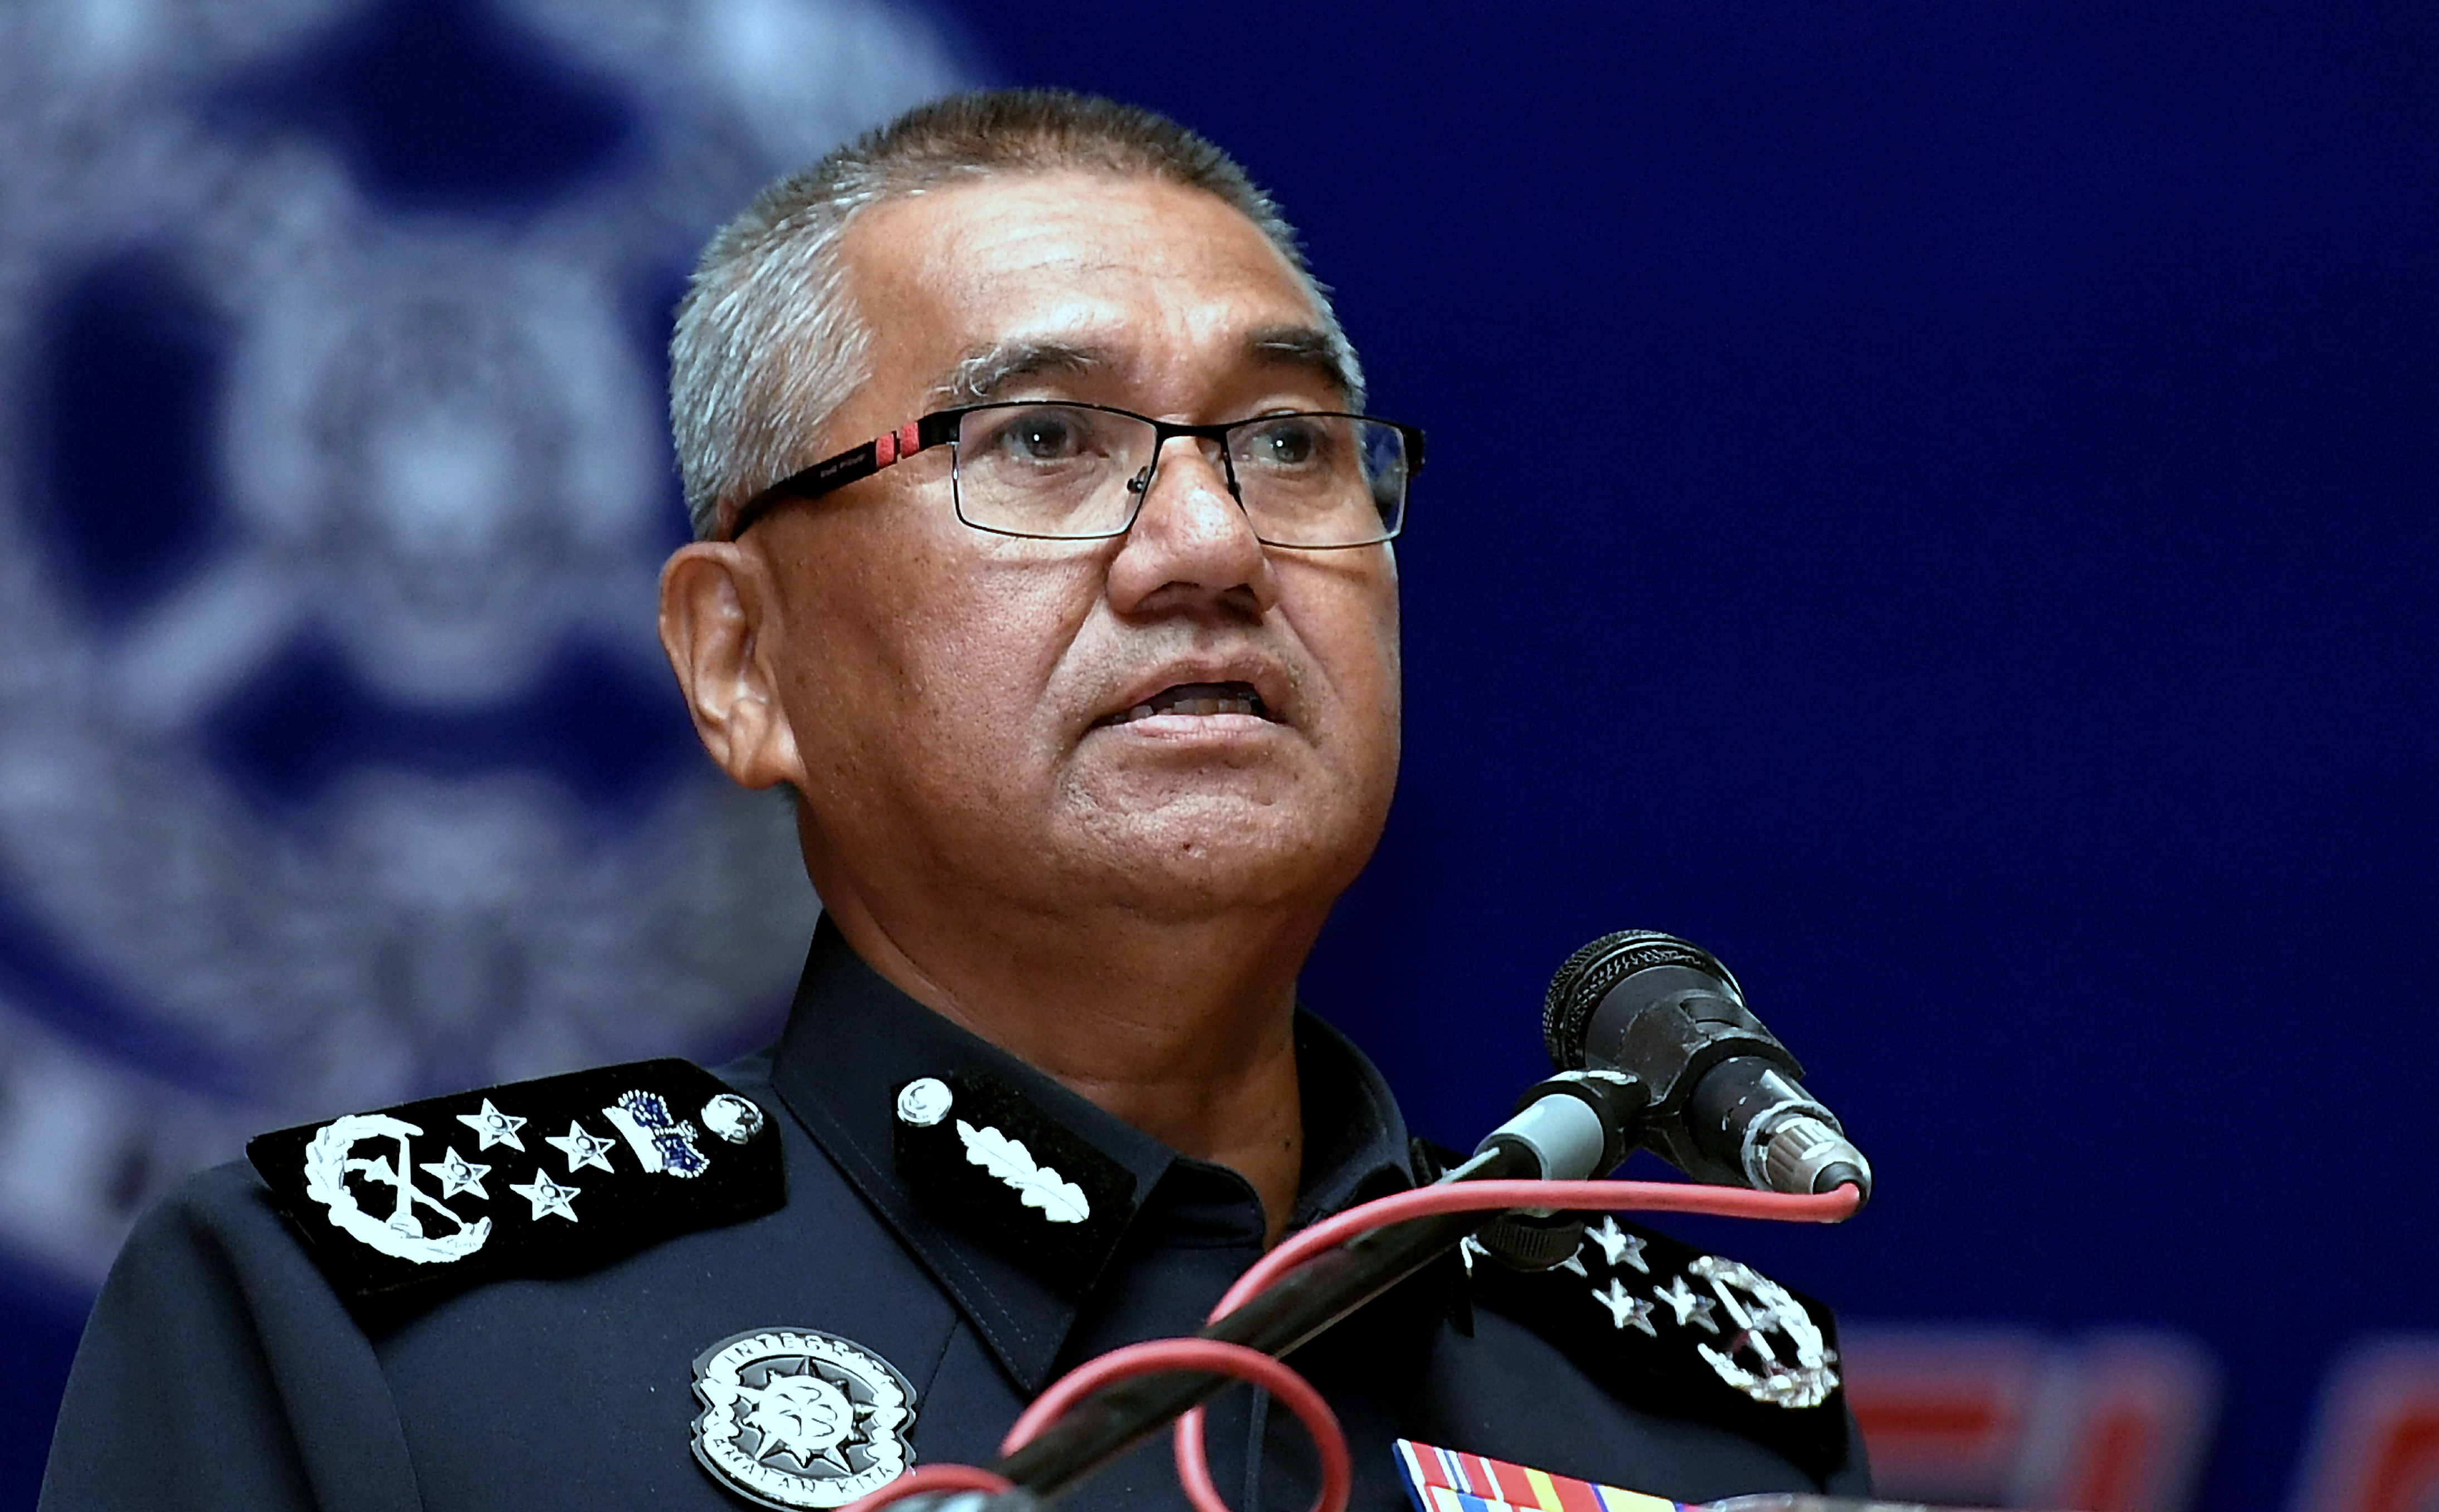 Mohamad Fuzi said the militant had long been on the police's 'Most Wanted' list. — Bernama pic